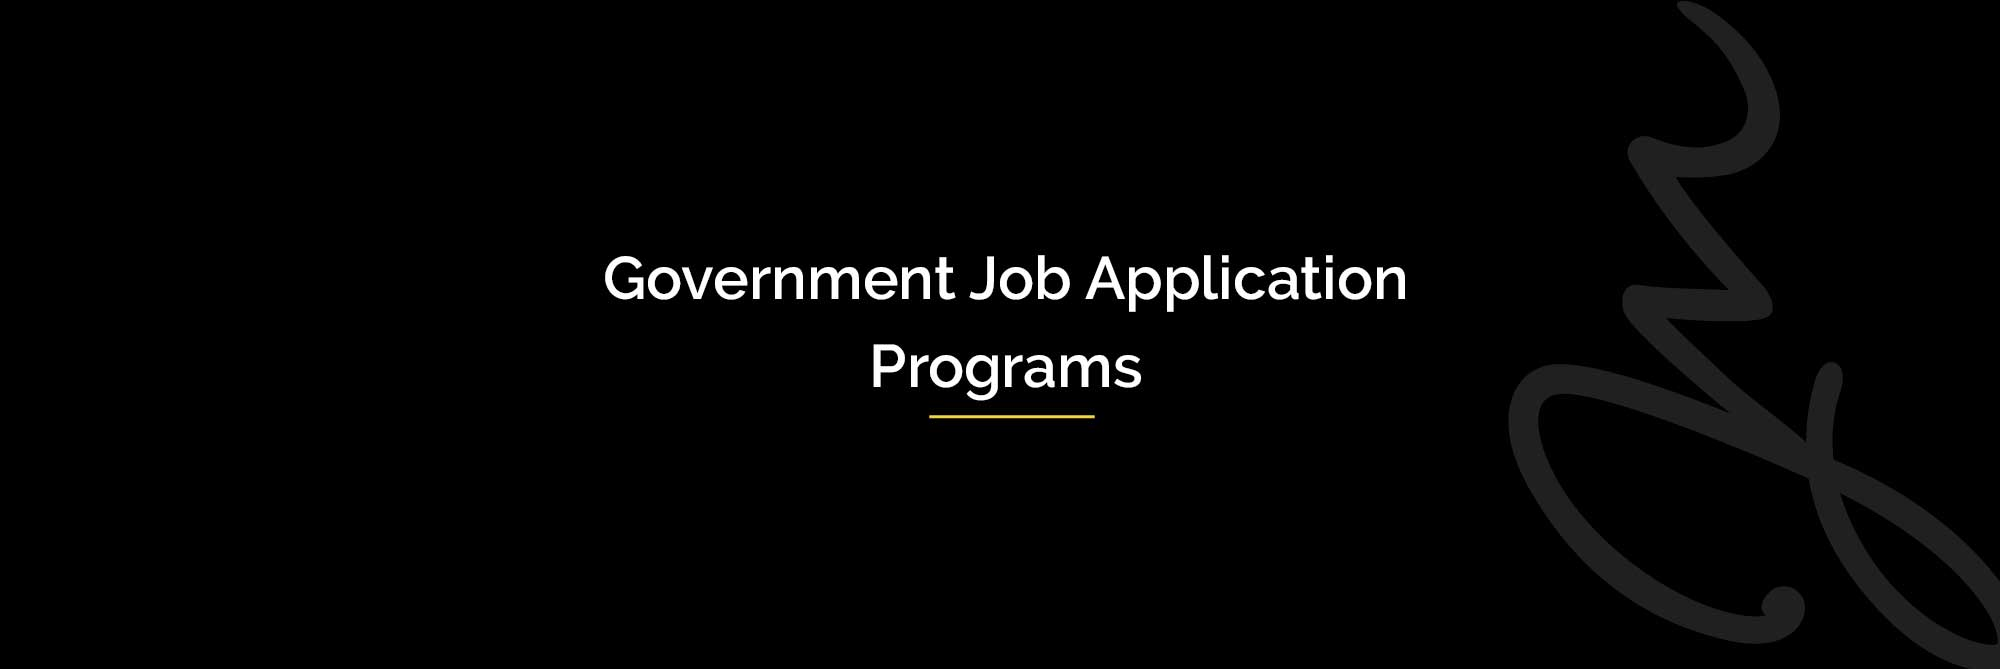 gov-job-applications